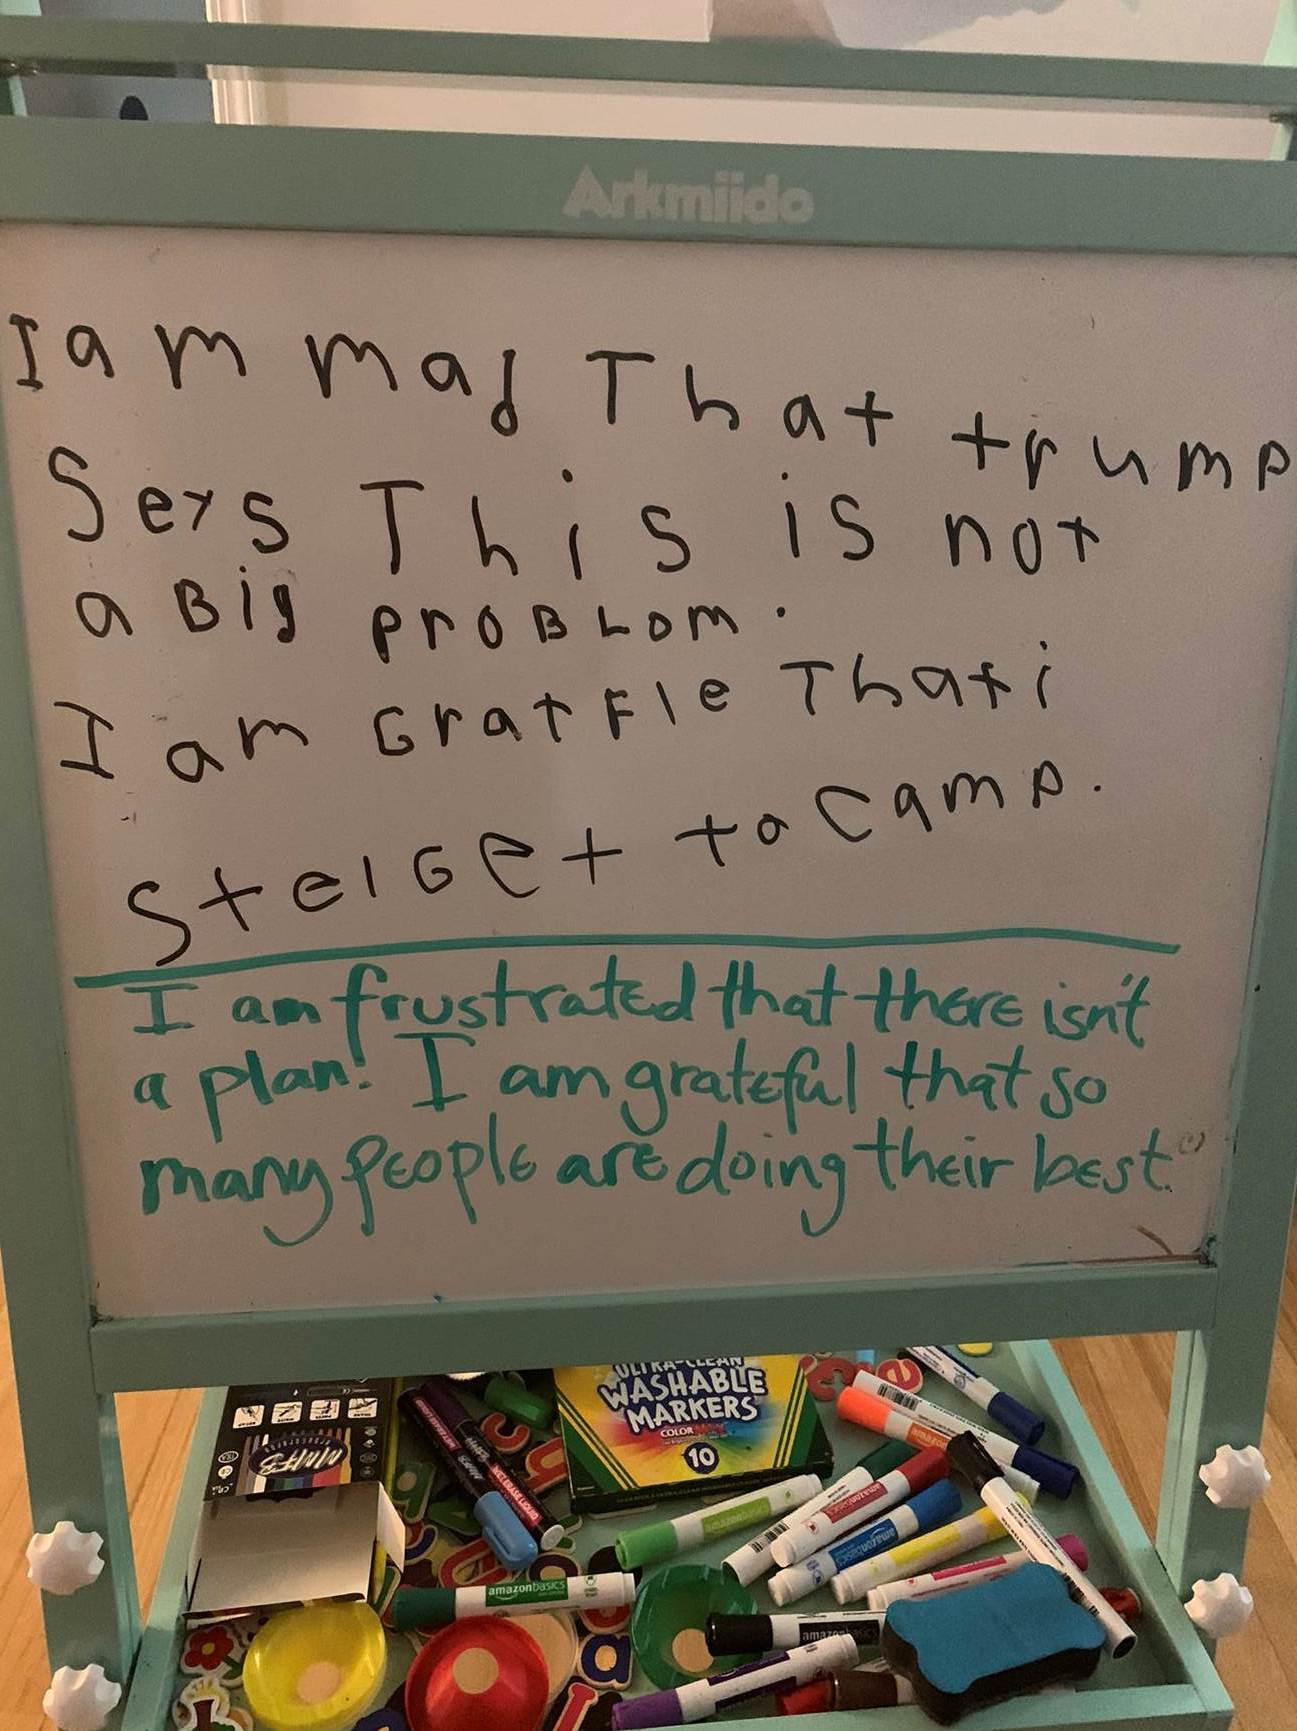 """A whiteboard which reads, in a child's handwriting, """"I am mad that trump says this is not a big problem. I am grateful that I still get to go to camp."""" Below, in an adult's handwriting: """"I am frustrated that there isn't a plan! I am grateful that so many people are doing their best."""""""